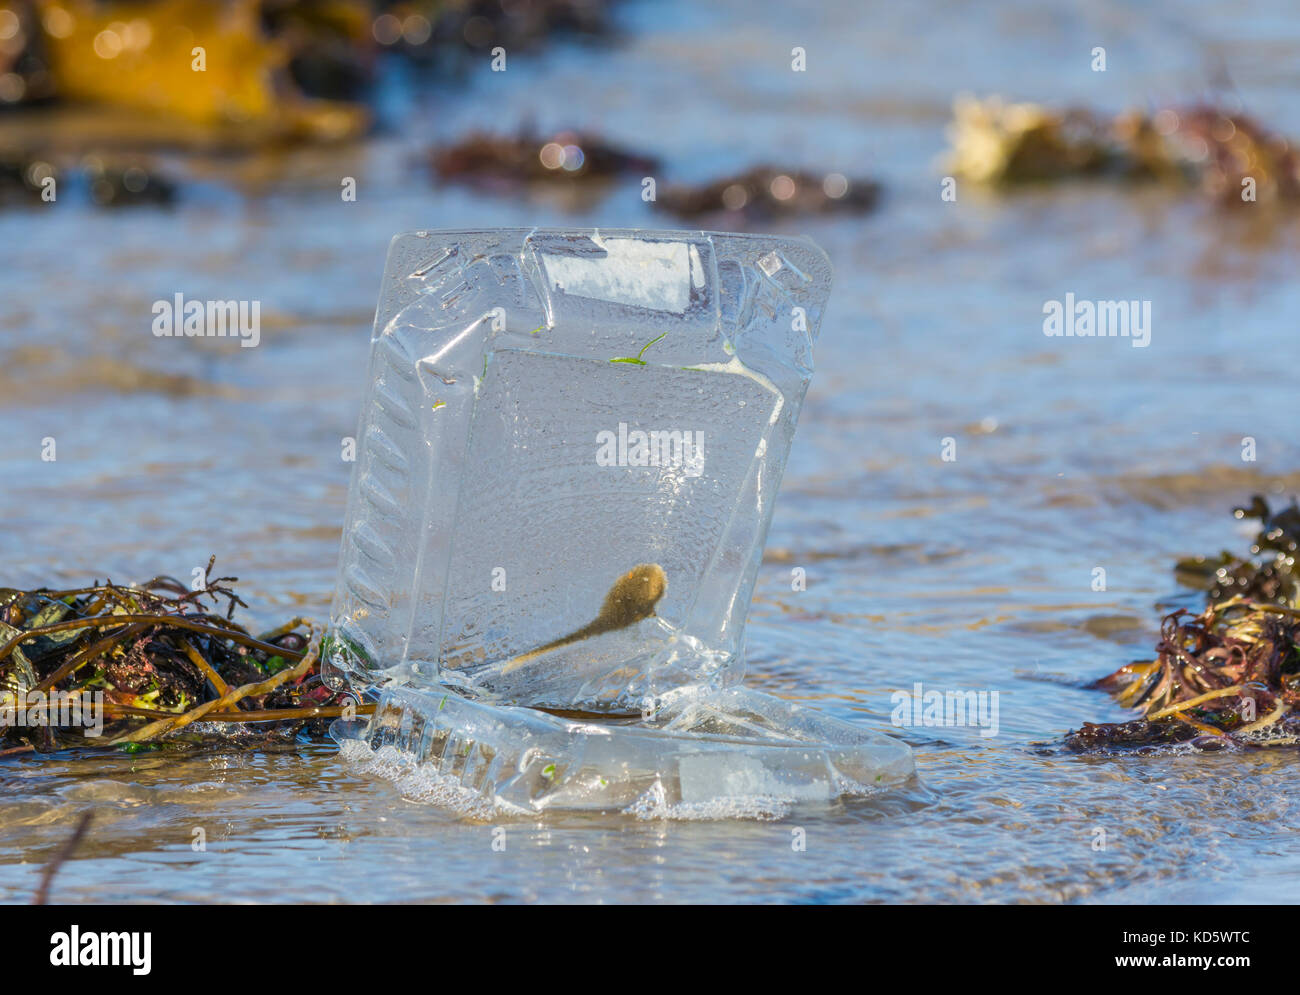 Discarded plastic food container washed up on a beach by the sea in the UK. Sky ocean rescue. - Stock Image